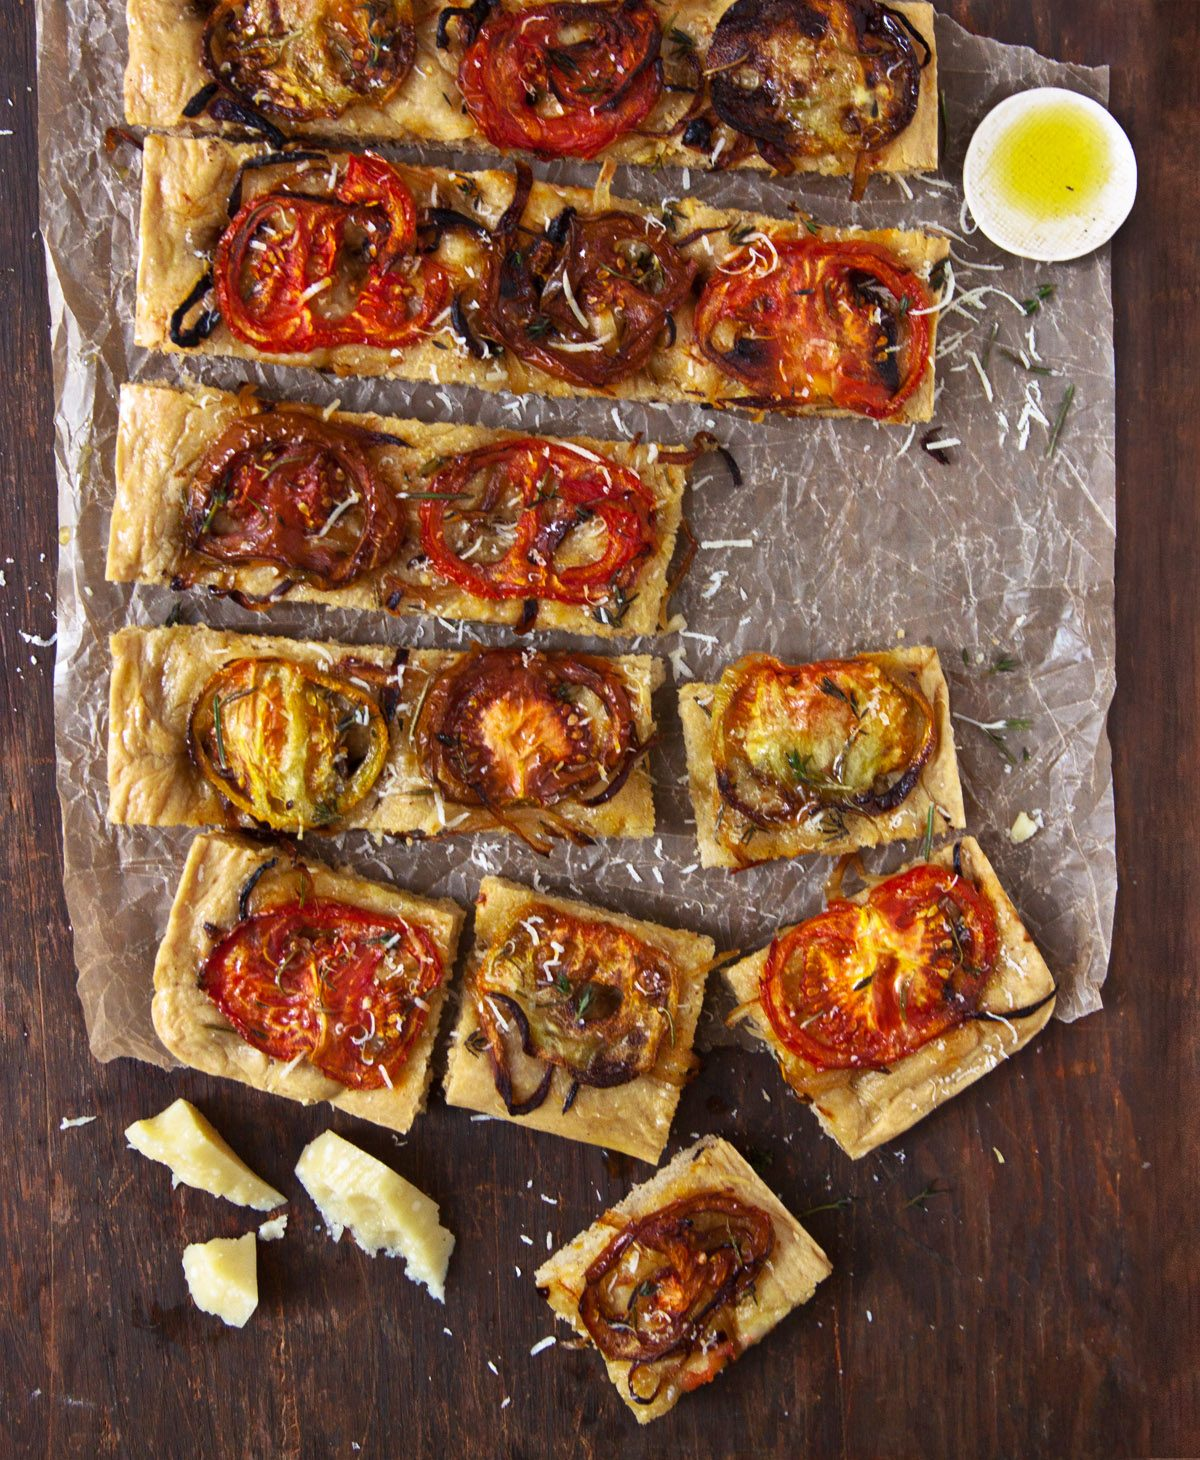 Roasted Tomato and Herb Sicilian Pizza